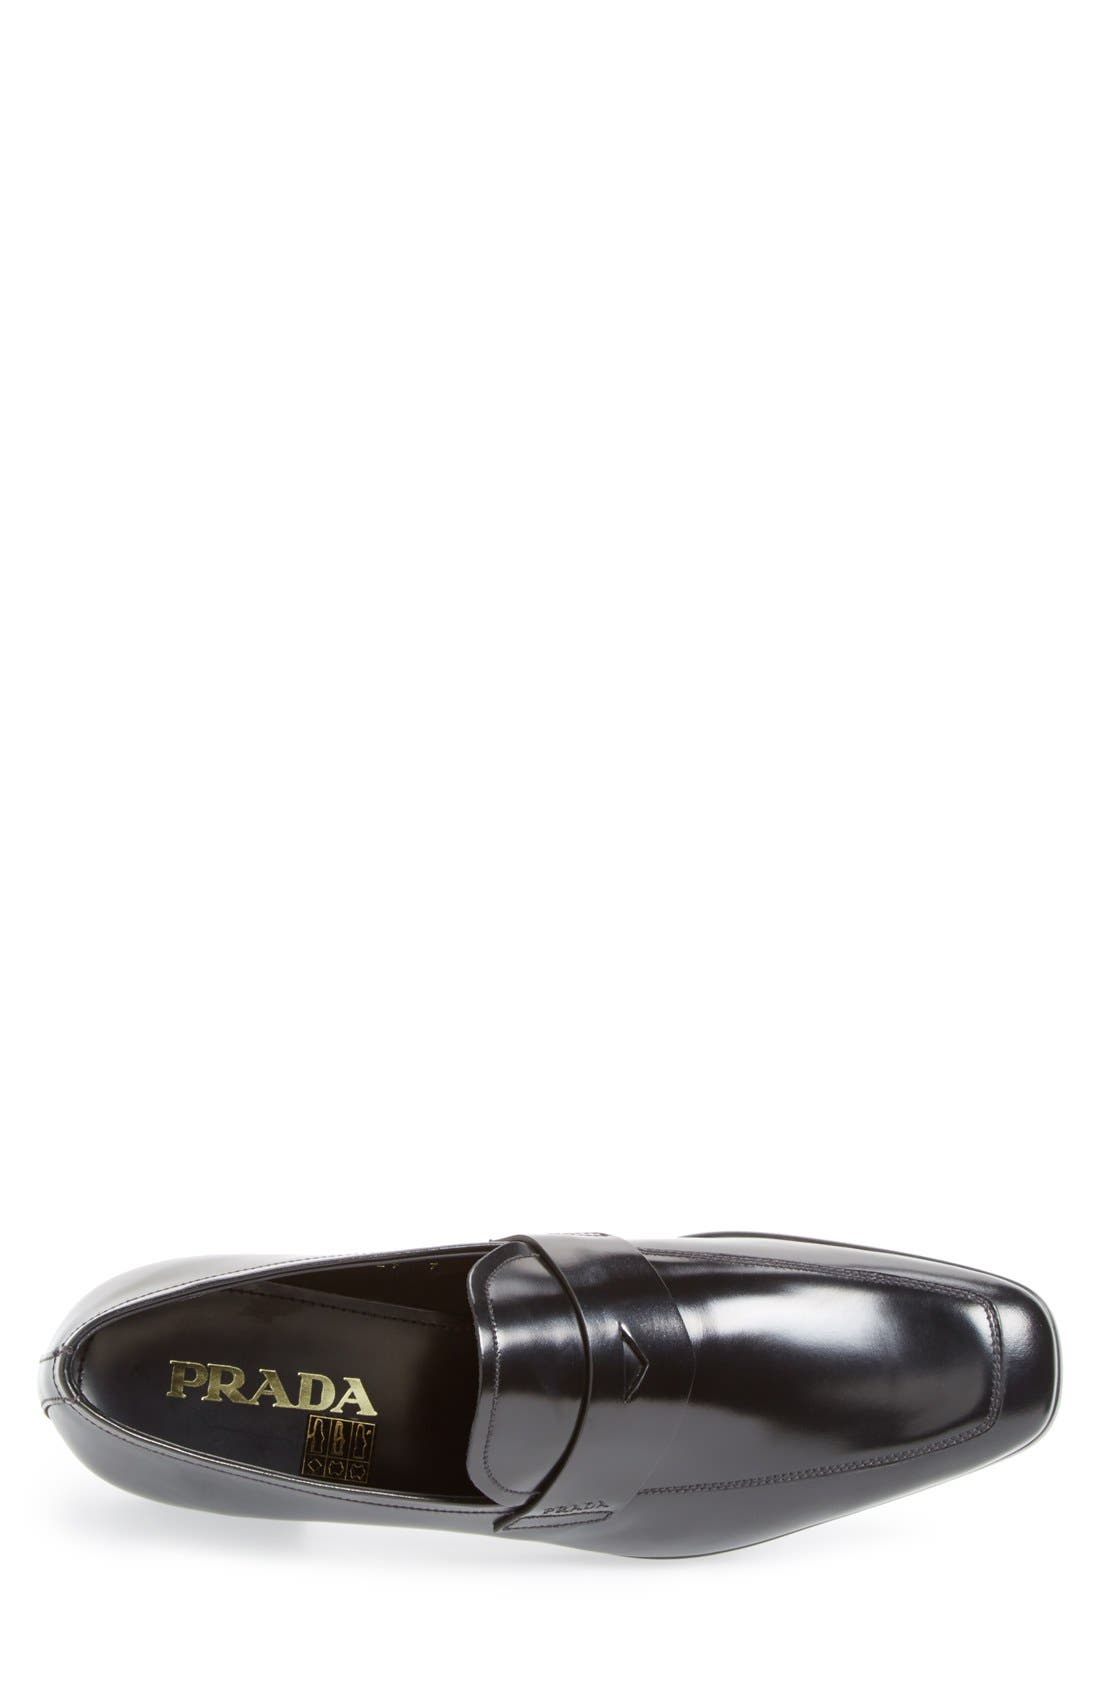 Spazzolato Penny Loafer,                             Alternate thumbnail 3, color,                             001